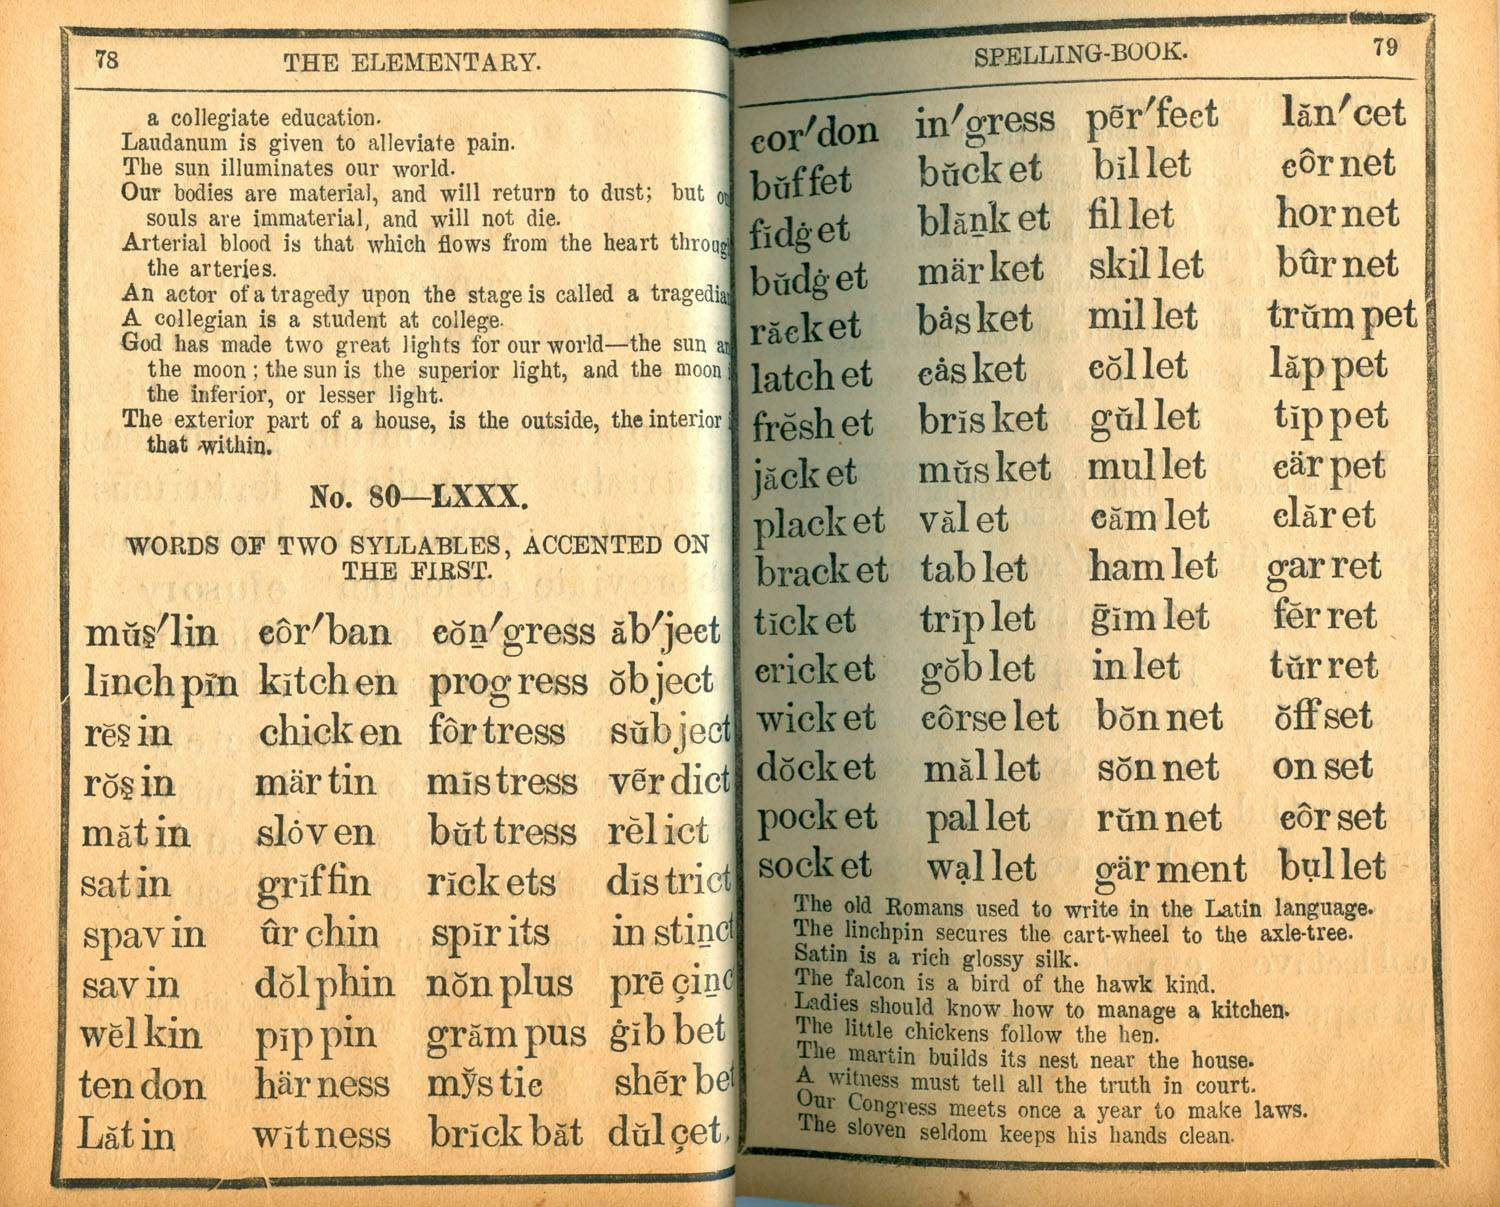 A page from Webster's Blue Back Speller which sold over 100 million copies.